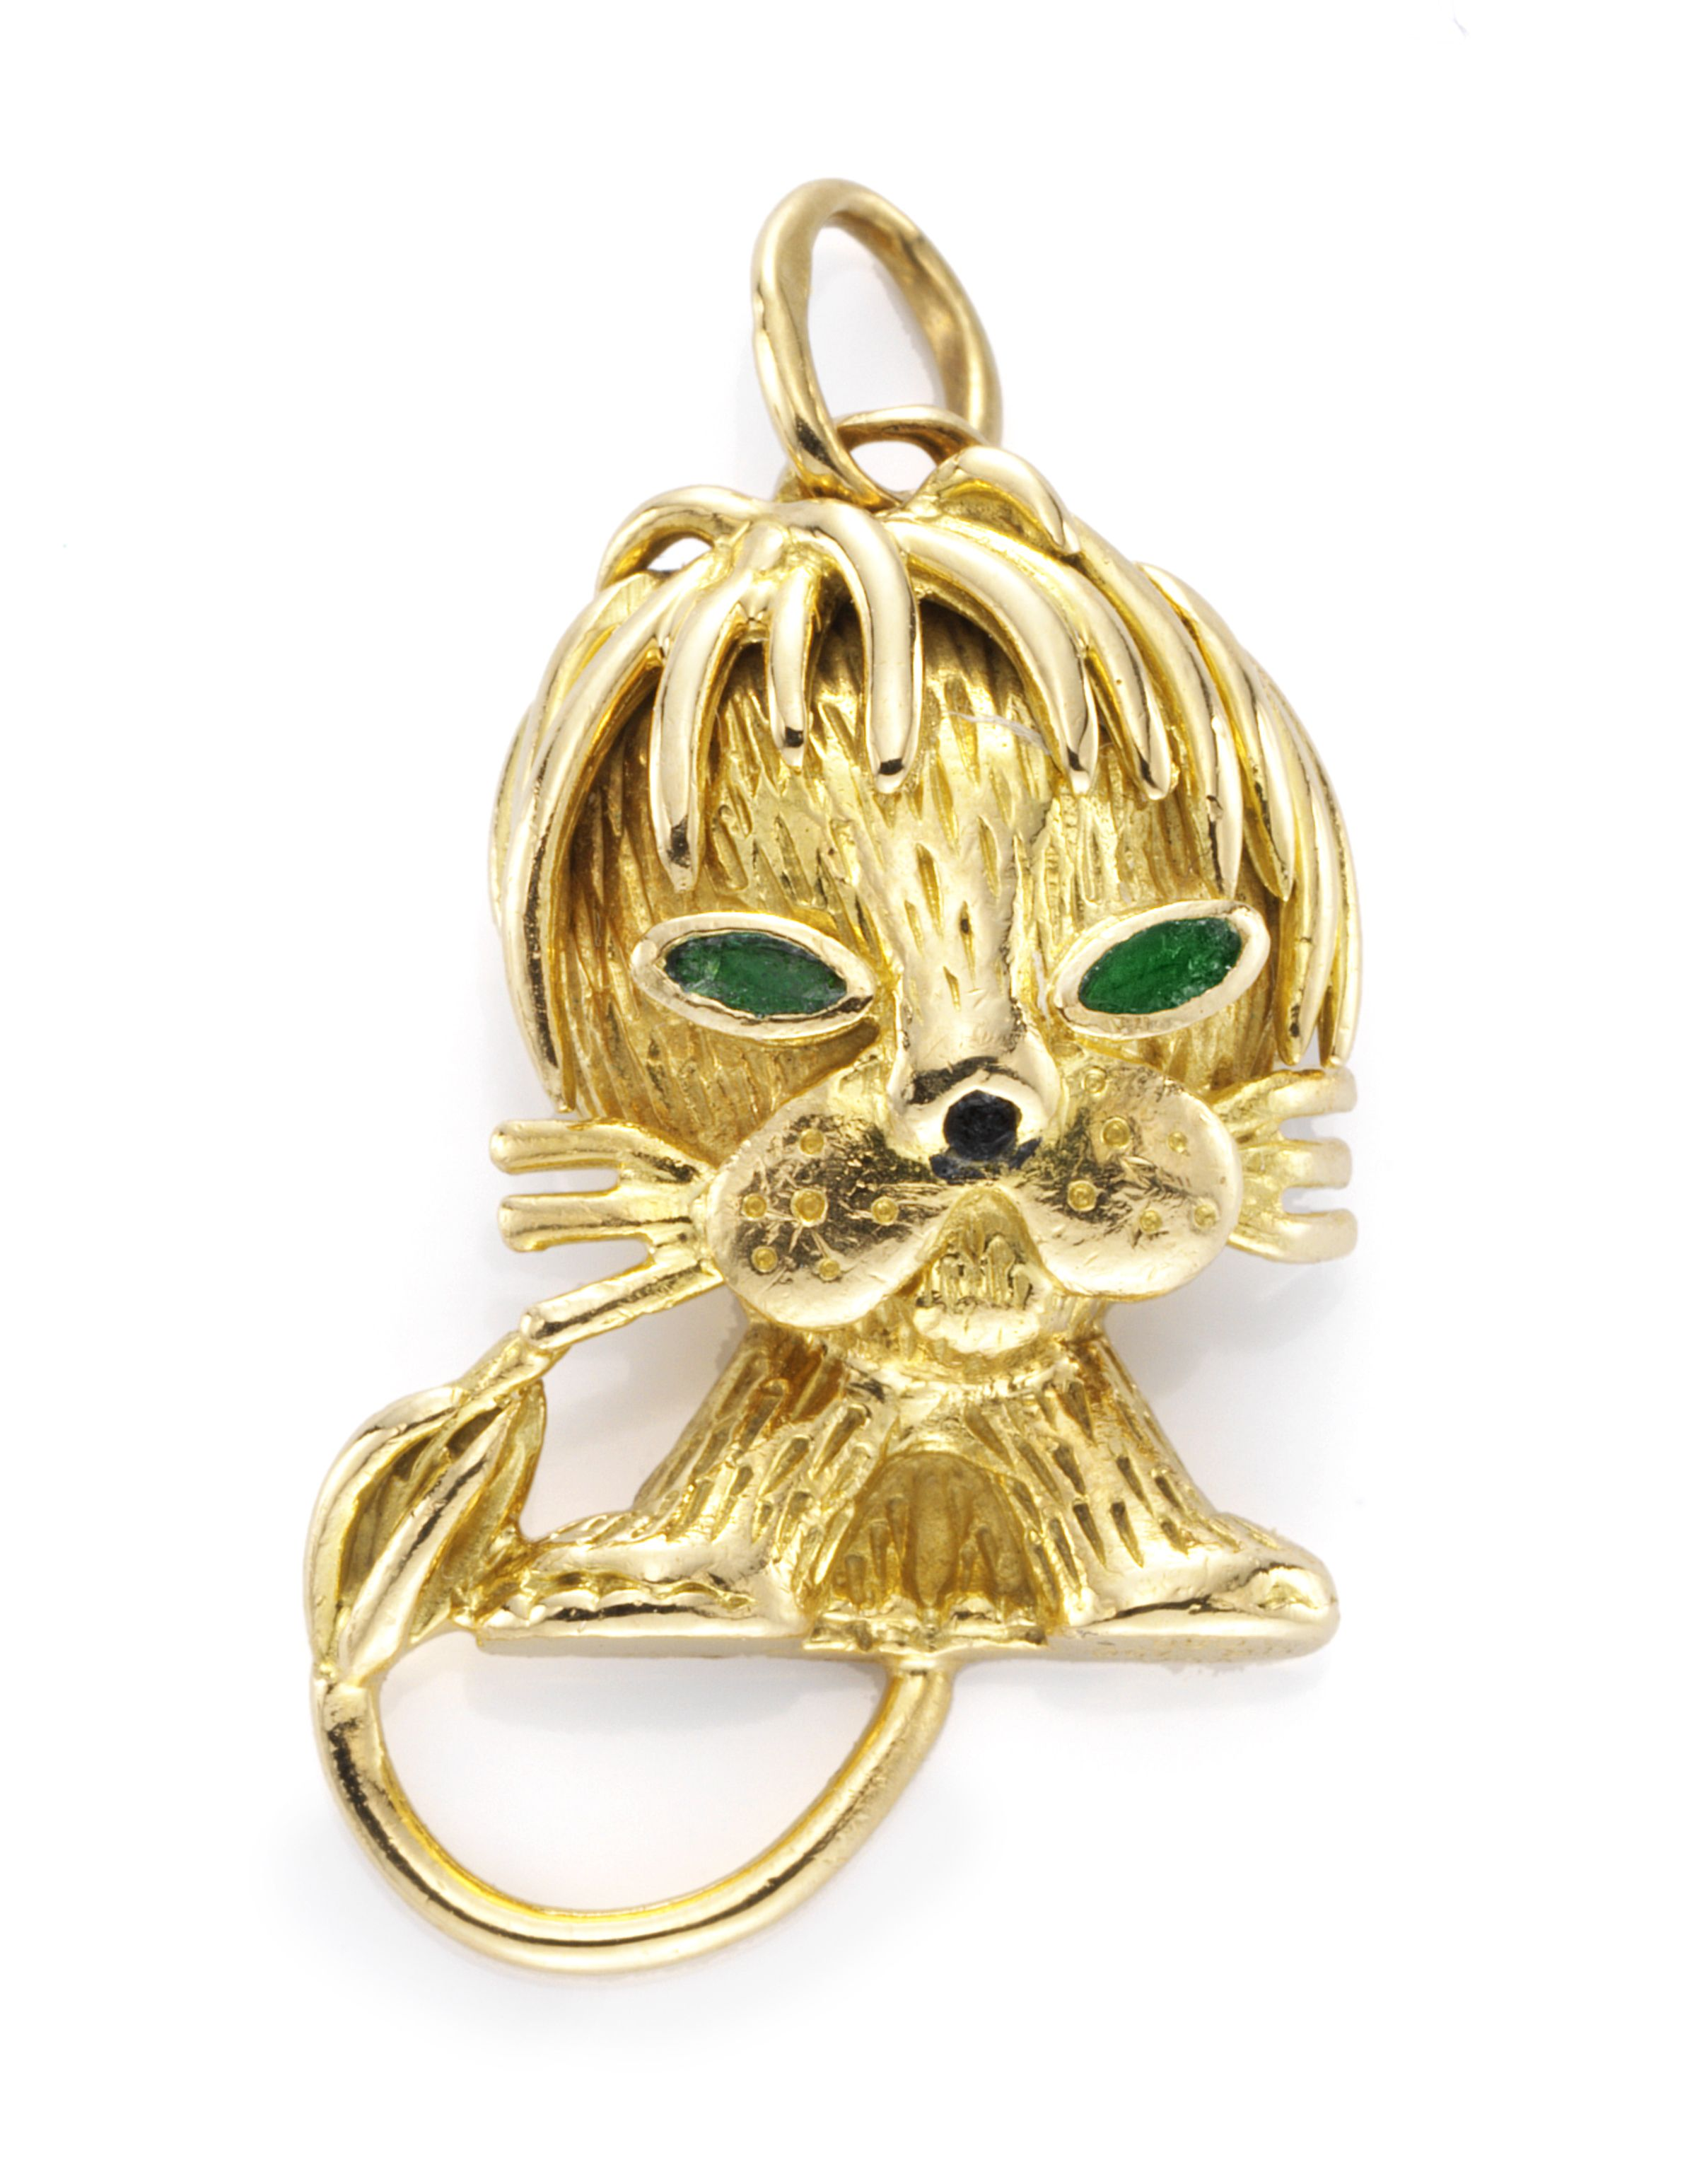 dwg obj cgtrader pendant print fbx pendants head model animal models max lion jewelry stl